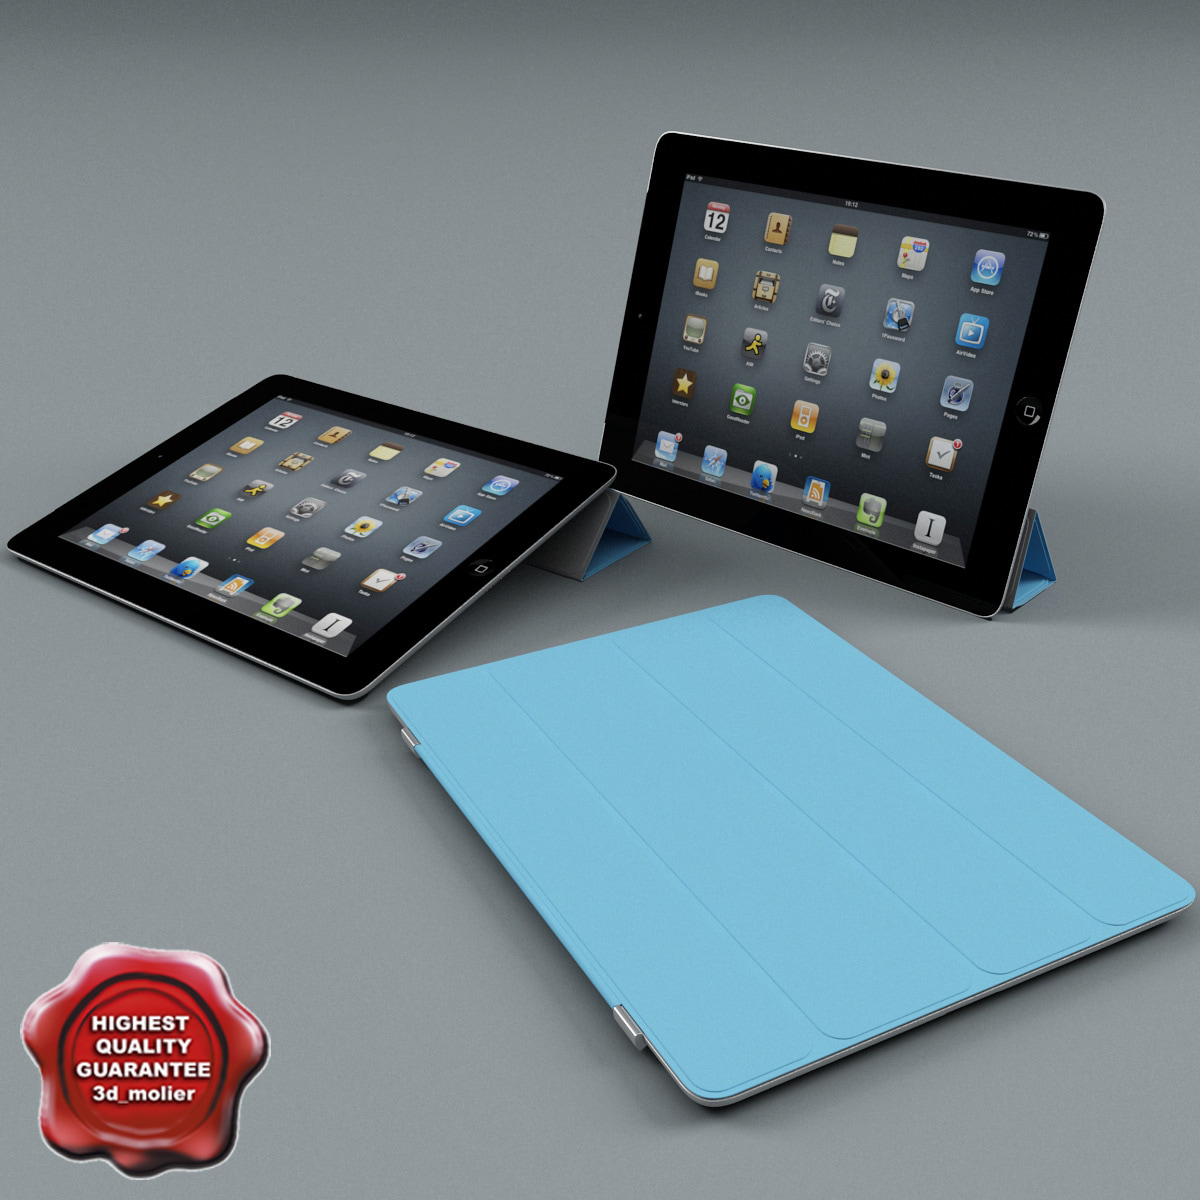 Apple_ipad2_and_SmartCover_00.jpg